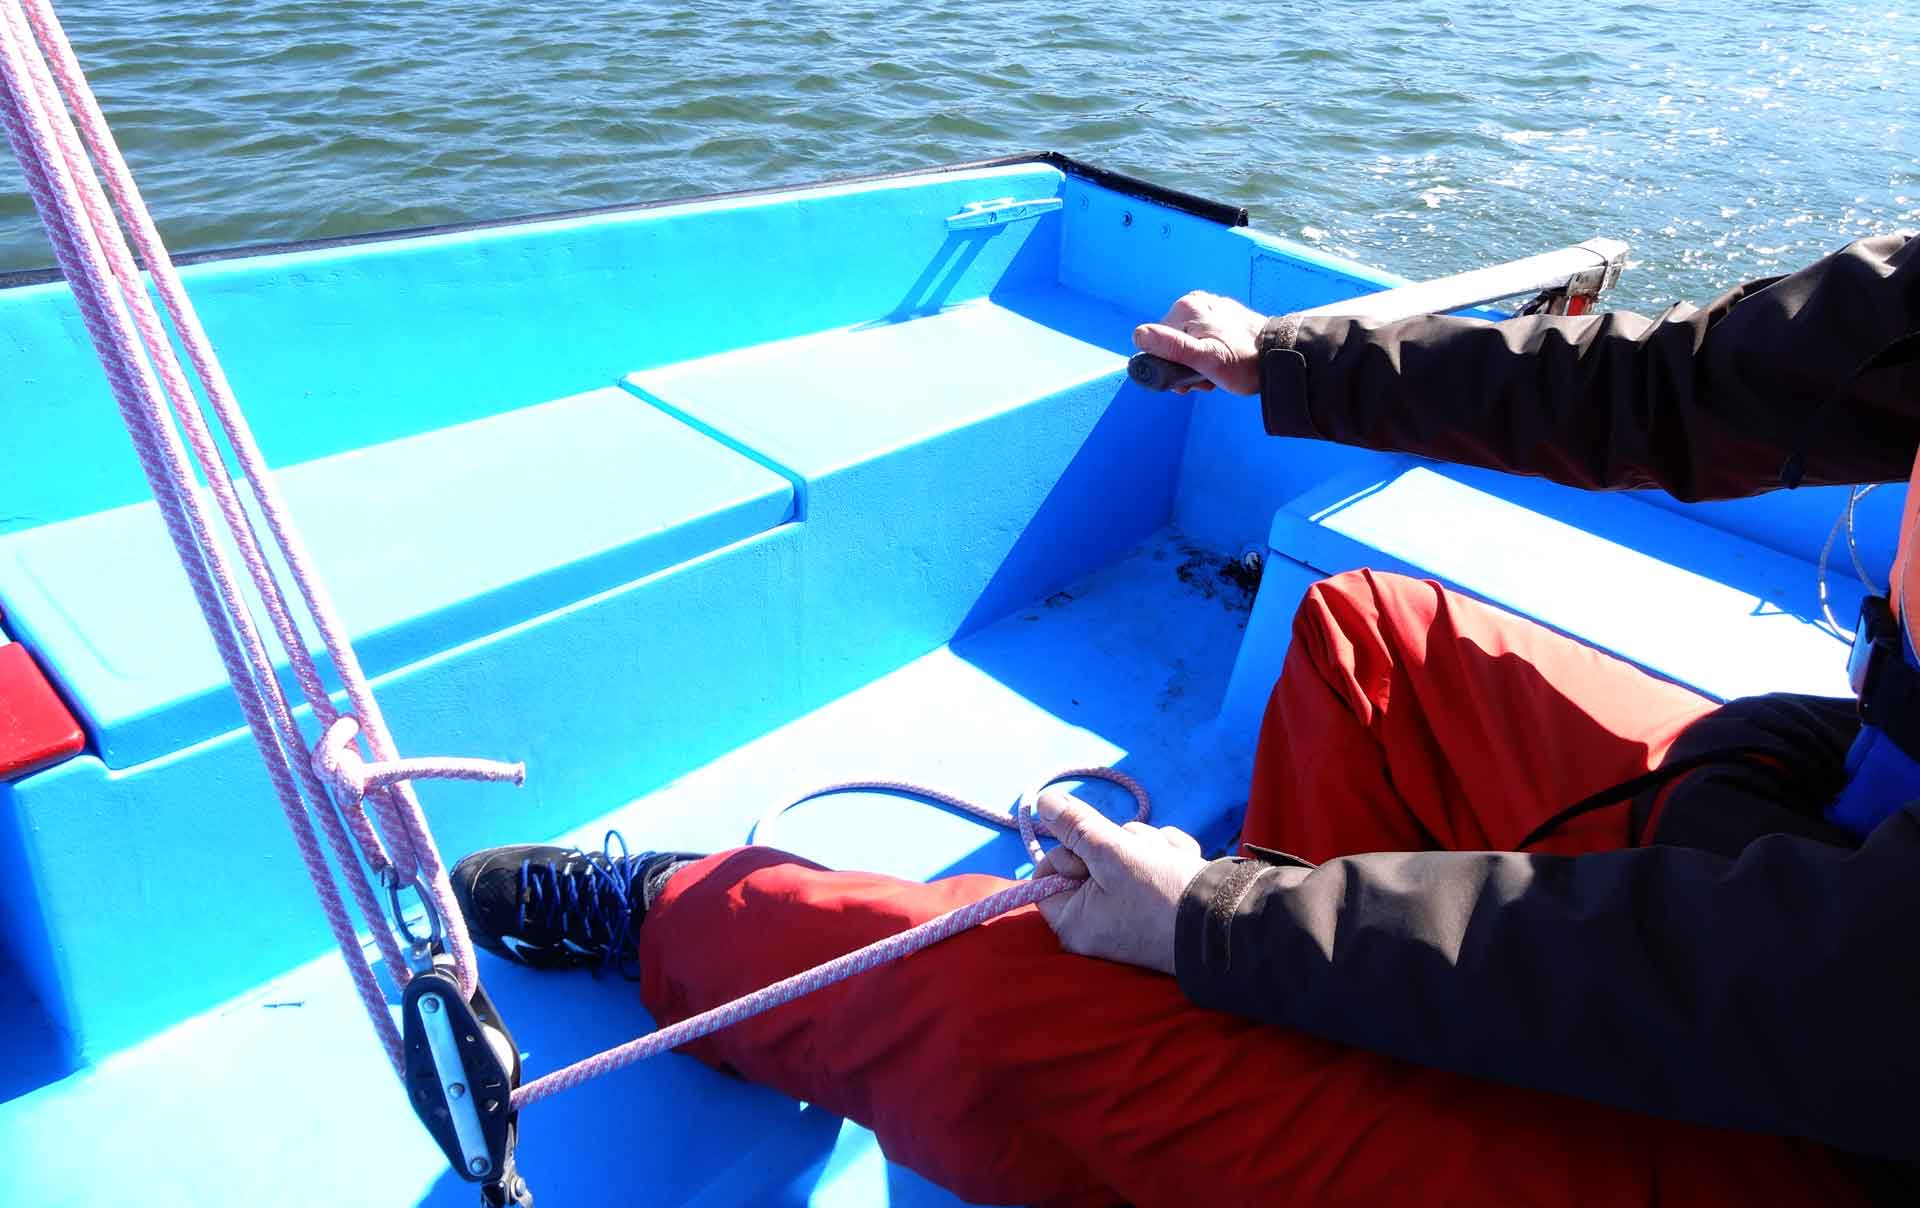 Learning how to sail: Feel the ship at the Mainsheet and Rudder simultaneosly